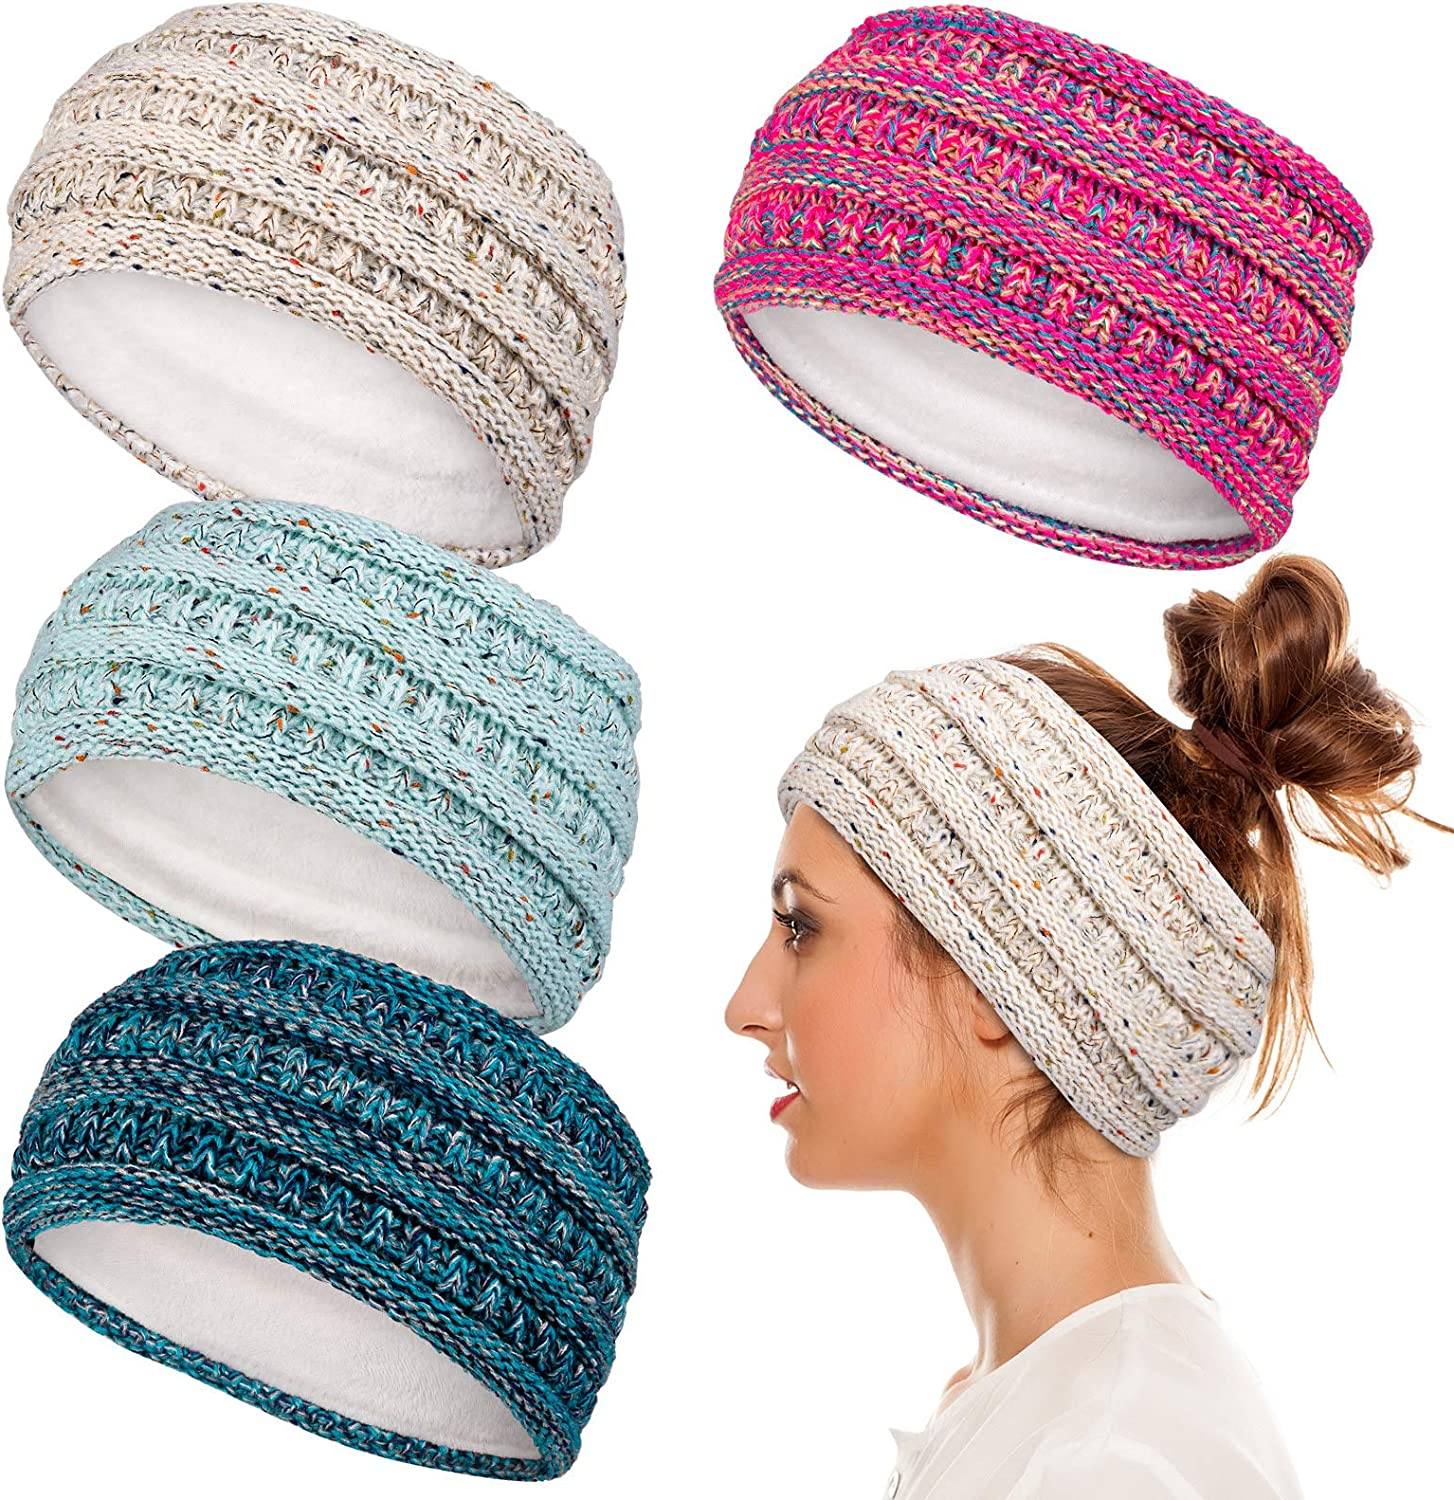 Whaline Ear Warmer Headband Pink Blue Confetti Head Wrap Winter Fleece Lined Thick Crochet Turban Stretchy Cable Knitted Headband for Men Women Girl Outdoor Sports Skiing Camping Hiking, 4 Pack